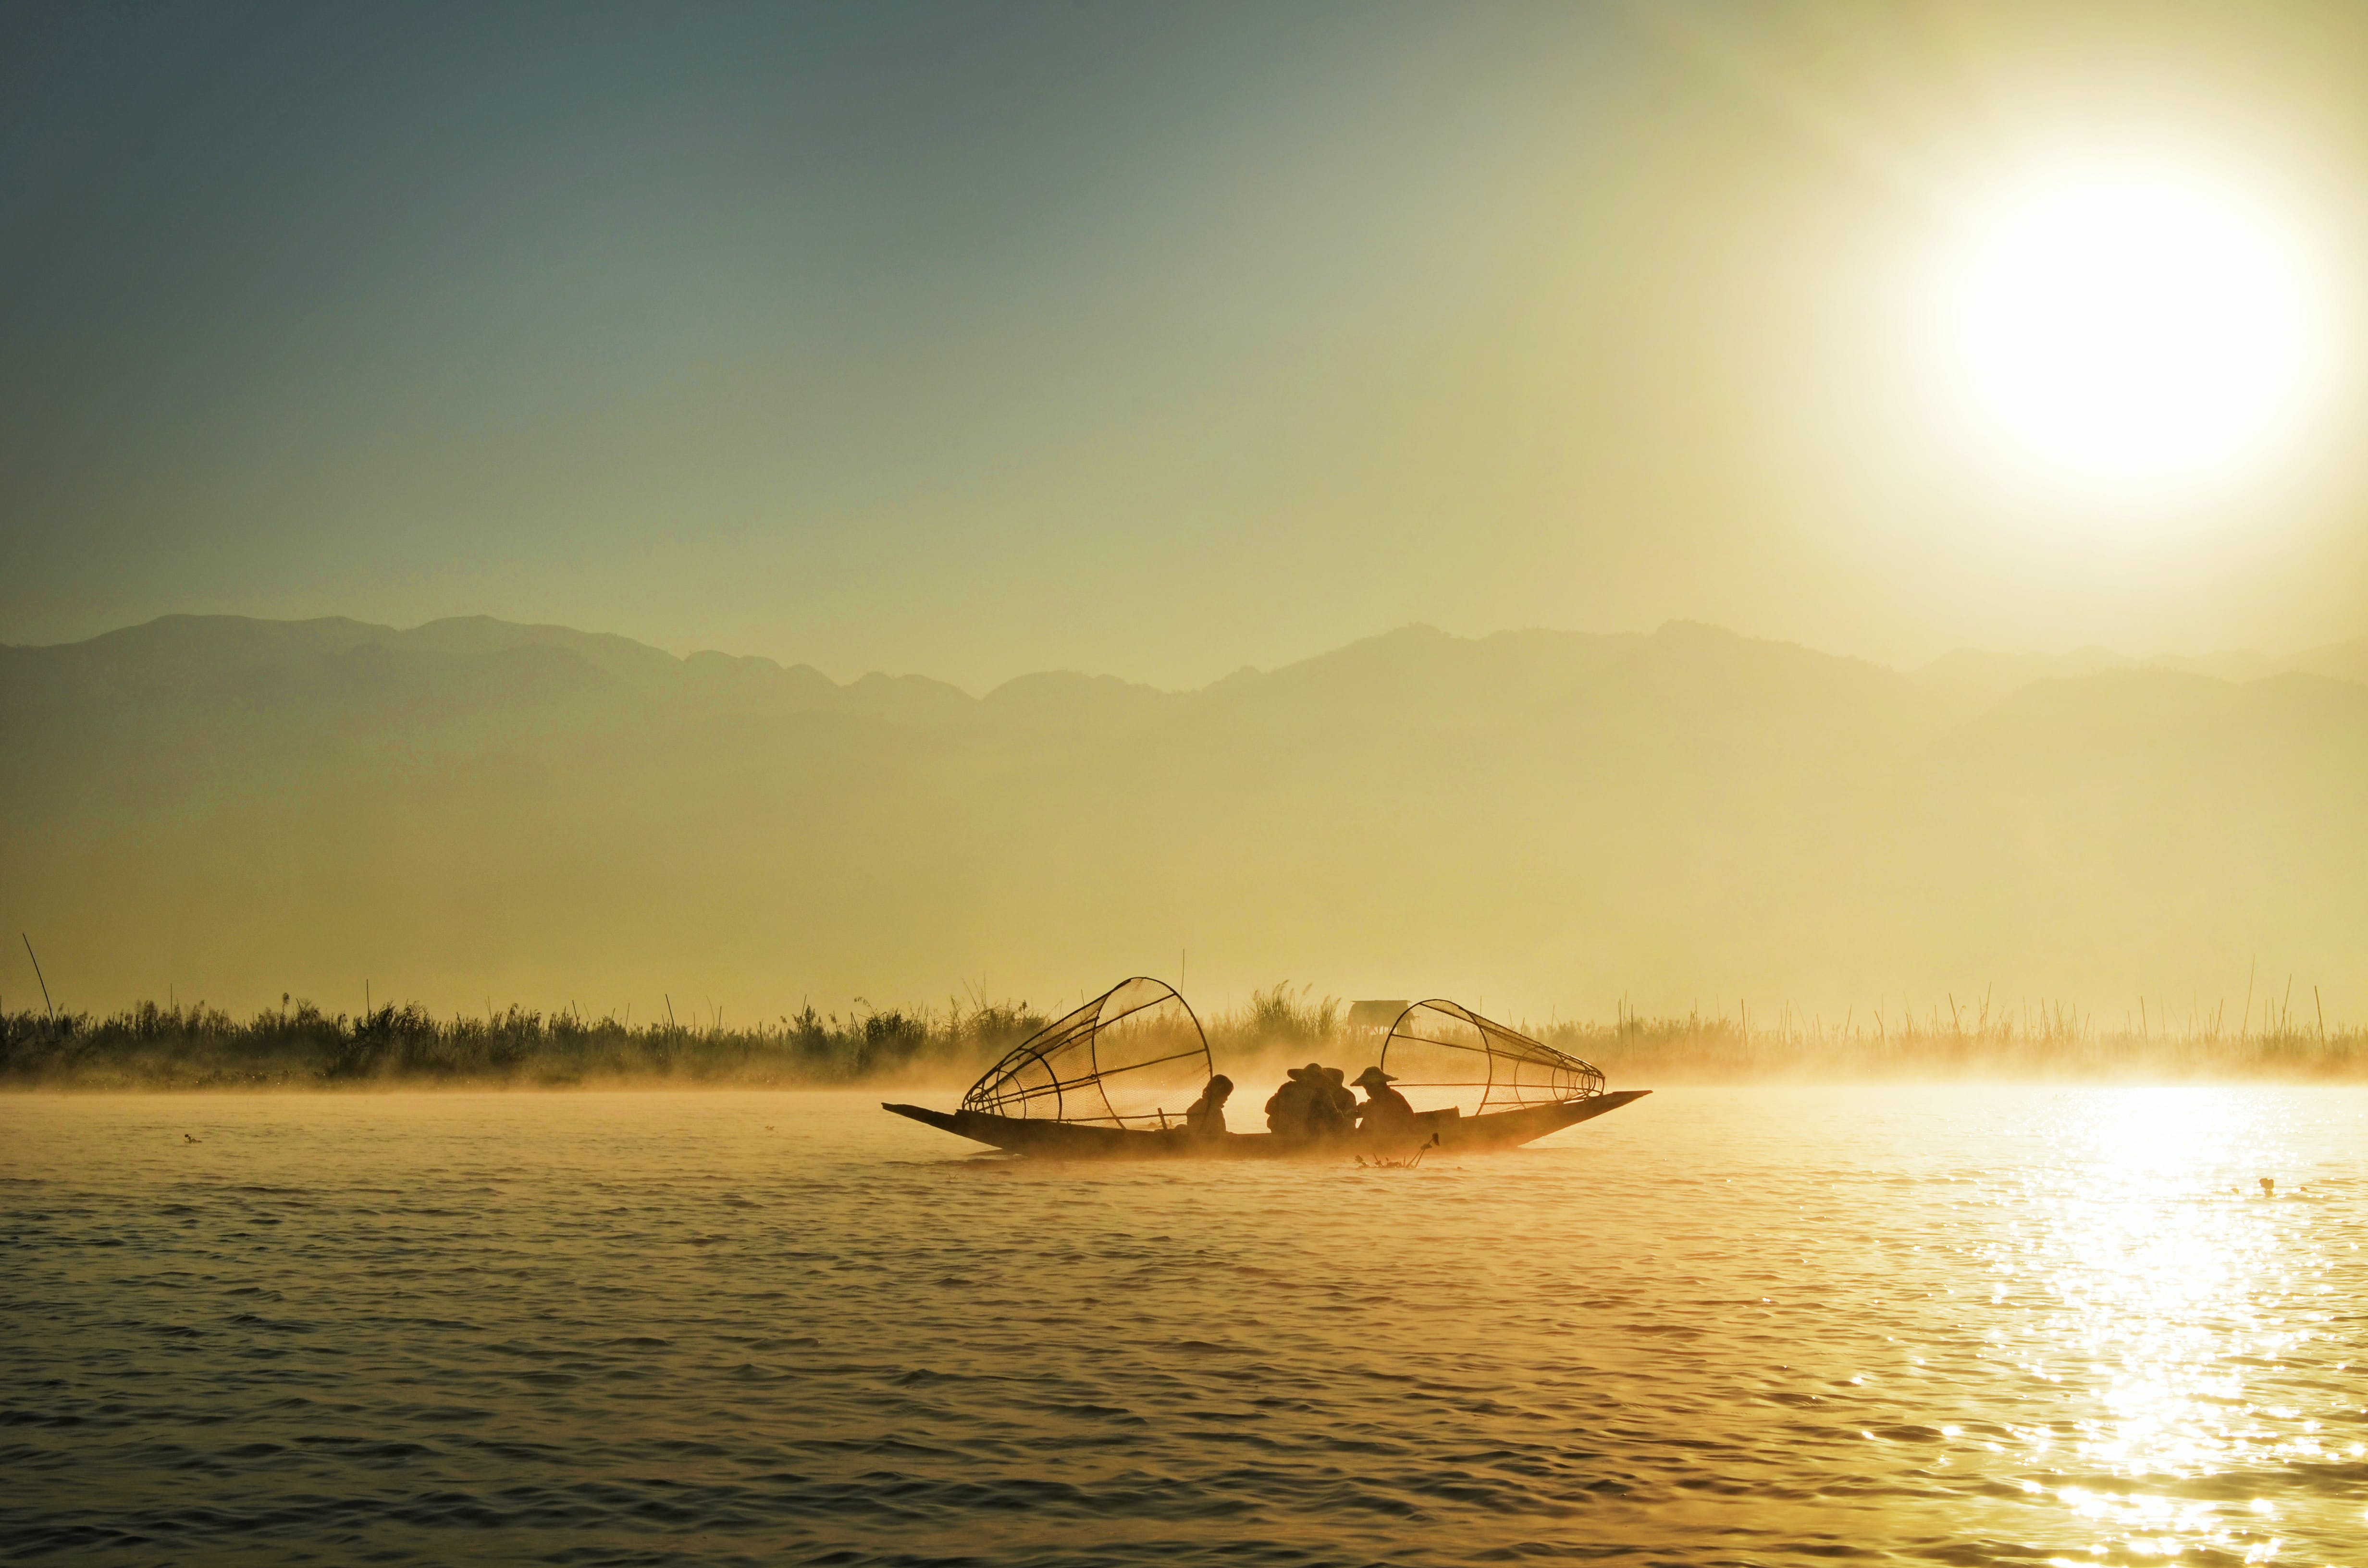 Group of People Riding Boat in the Middle of Water during Sunrise